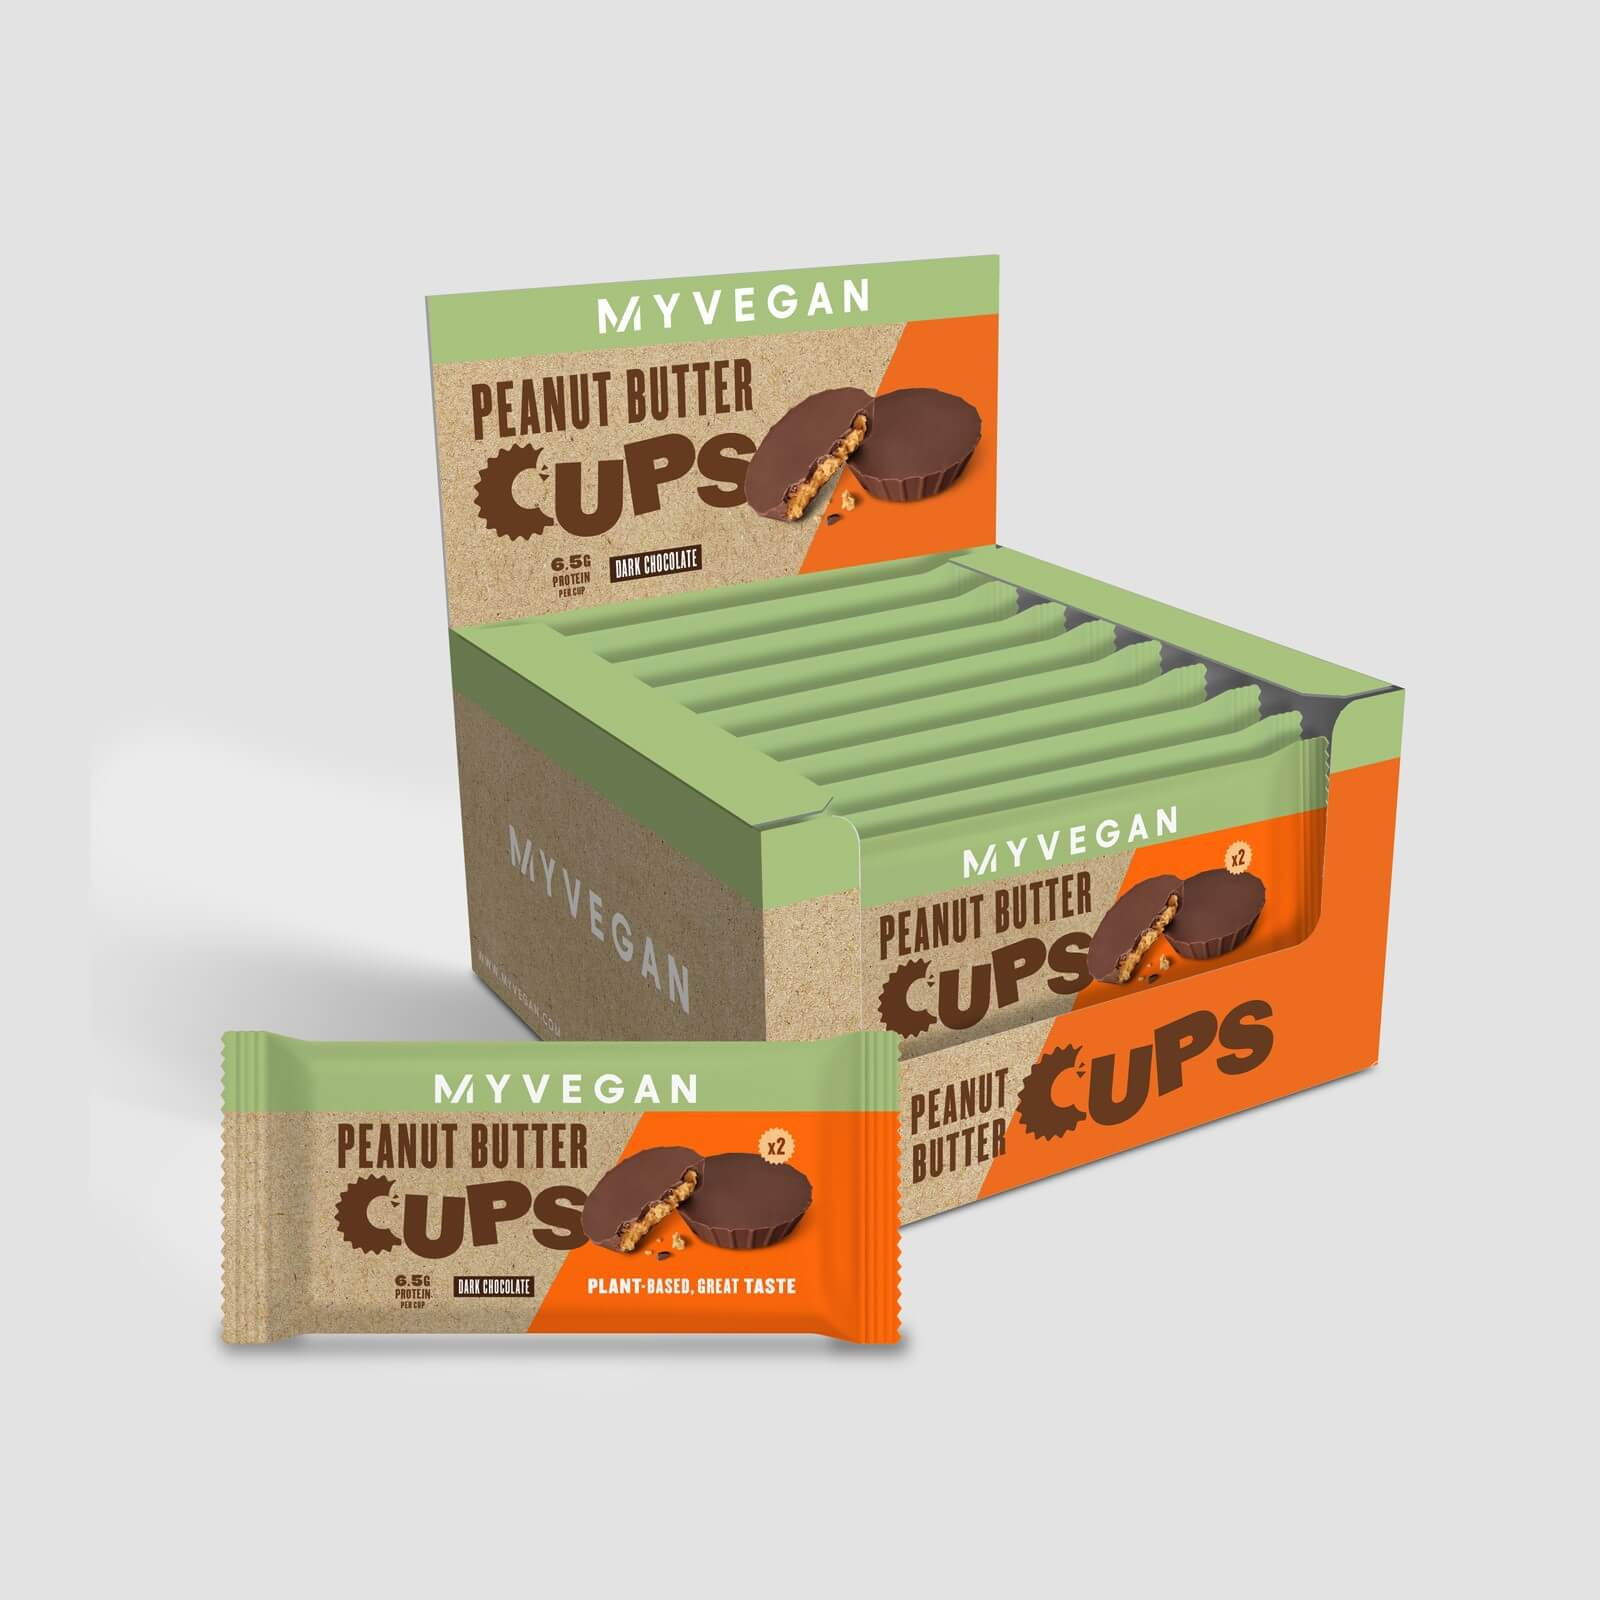 Vegan Peanut Butter Cups Vegan Snacks Myvegan